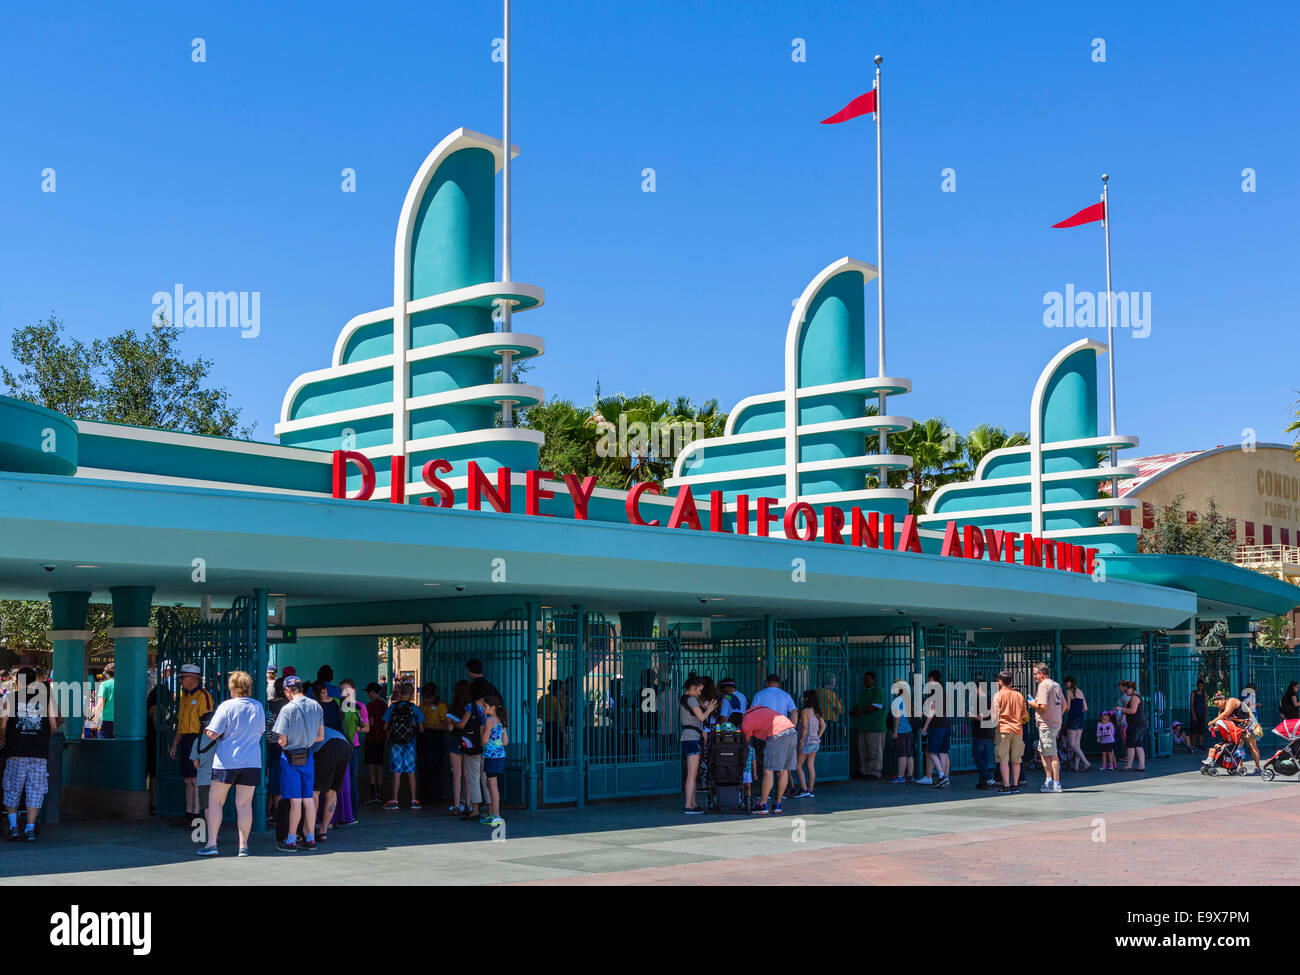 Turnstiles at the entrance to Disney California Adventure, Disneyland, Anaheim, Orange County, near Los Angeles, - Stock Image